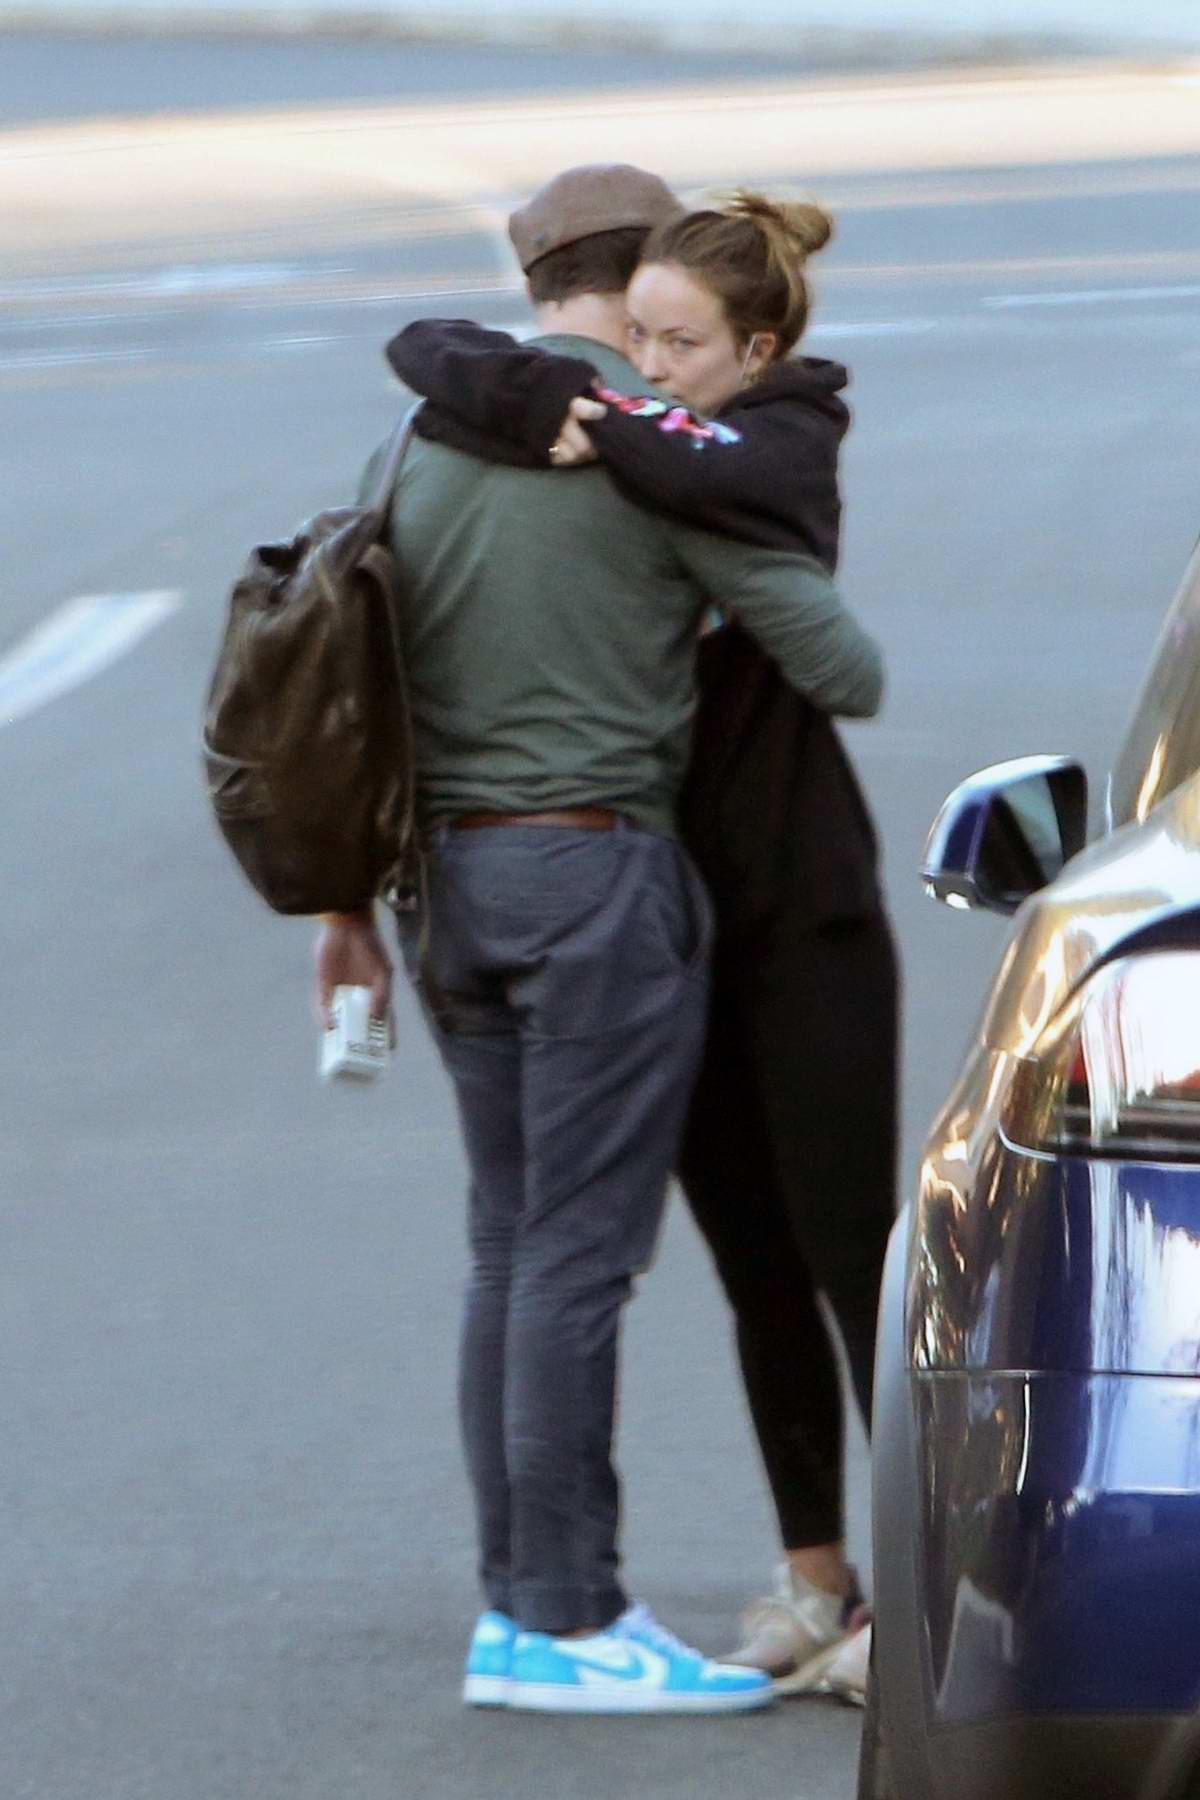 Olivia Wilde and Jason Sudekis share a loving embrace after visiting a Medical Center in Agoura Hills, California